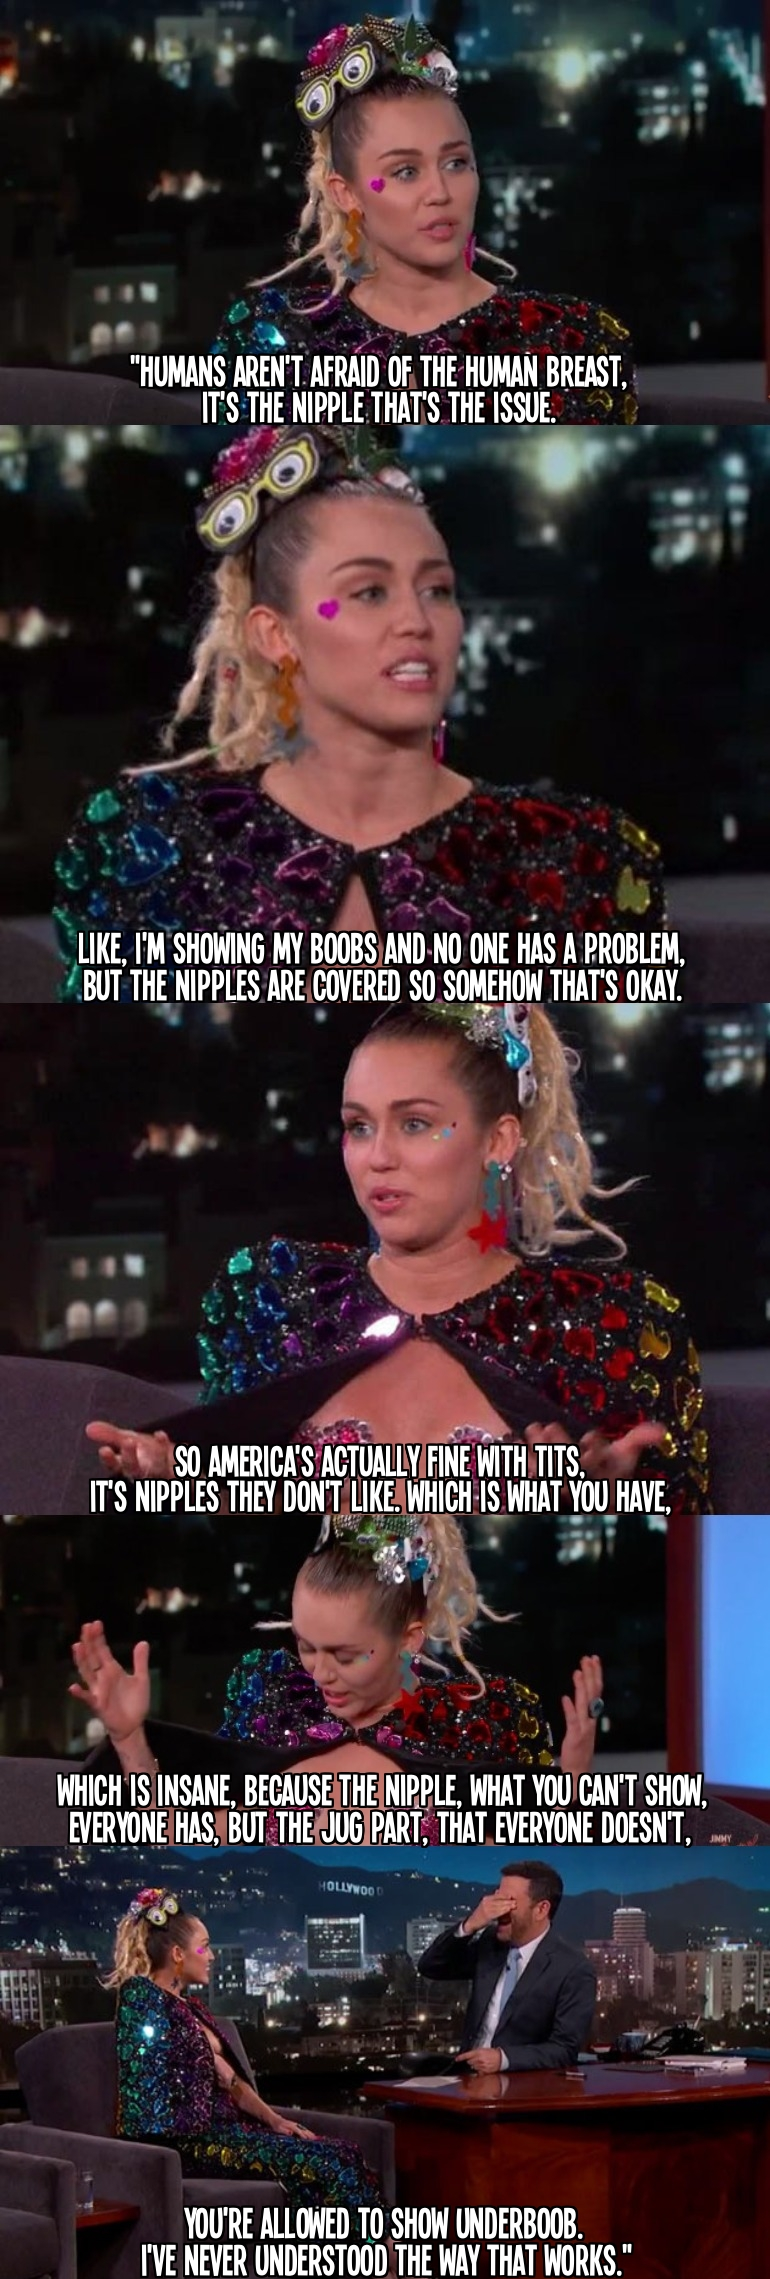 Miley Cyrus explains that humans aren't afraid of breasts, it's the nipple that's the issue.